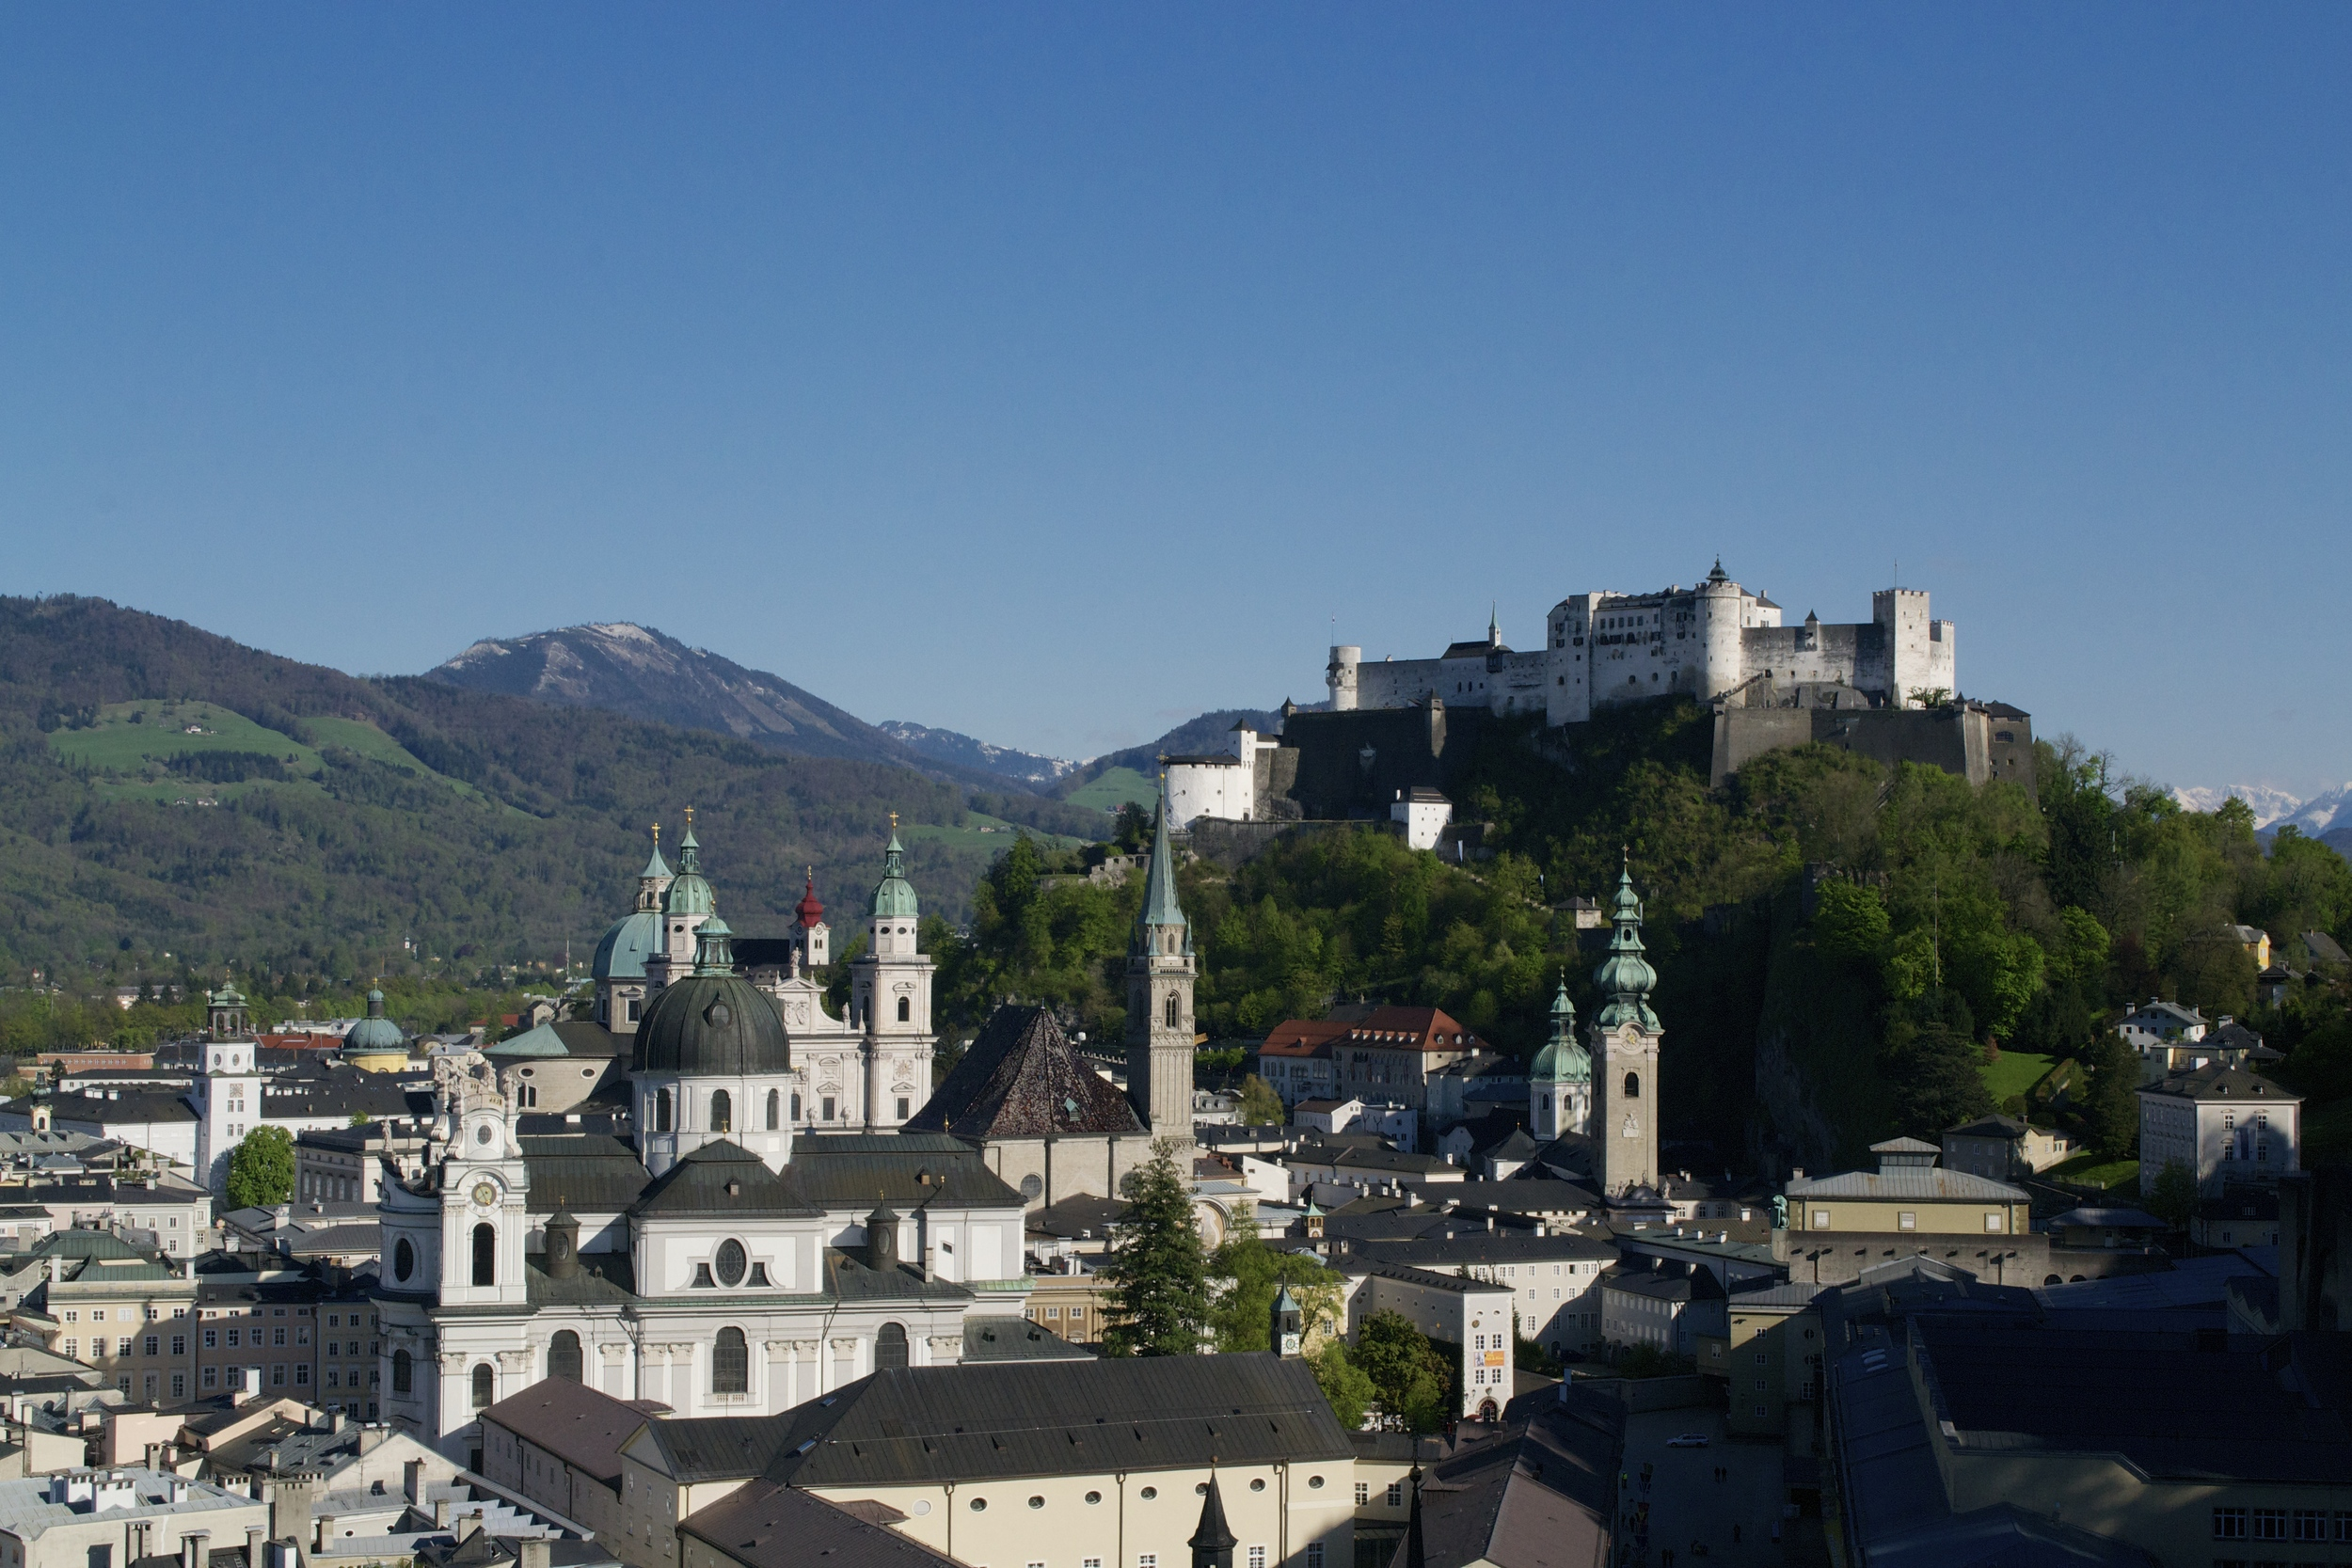 The view of Salzburg from the Mönchsberg.